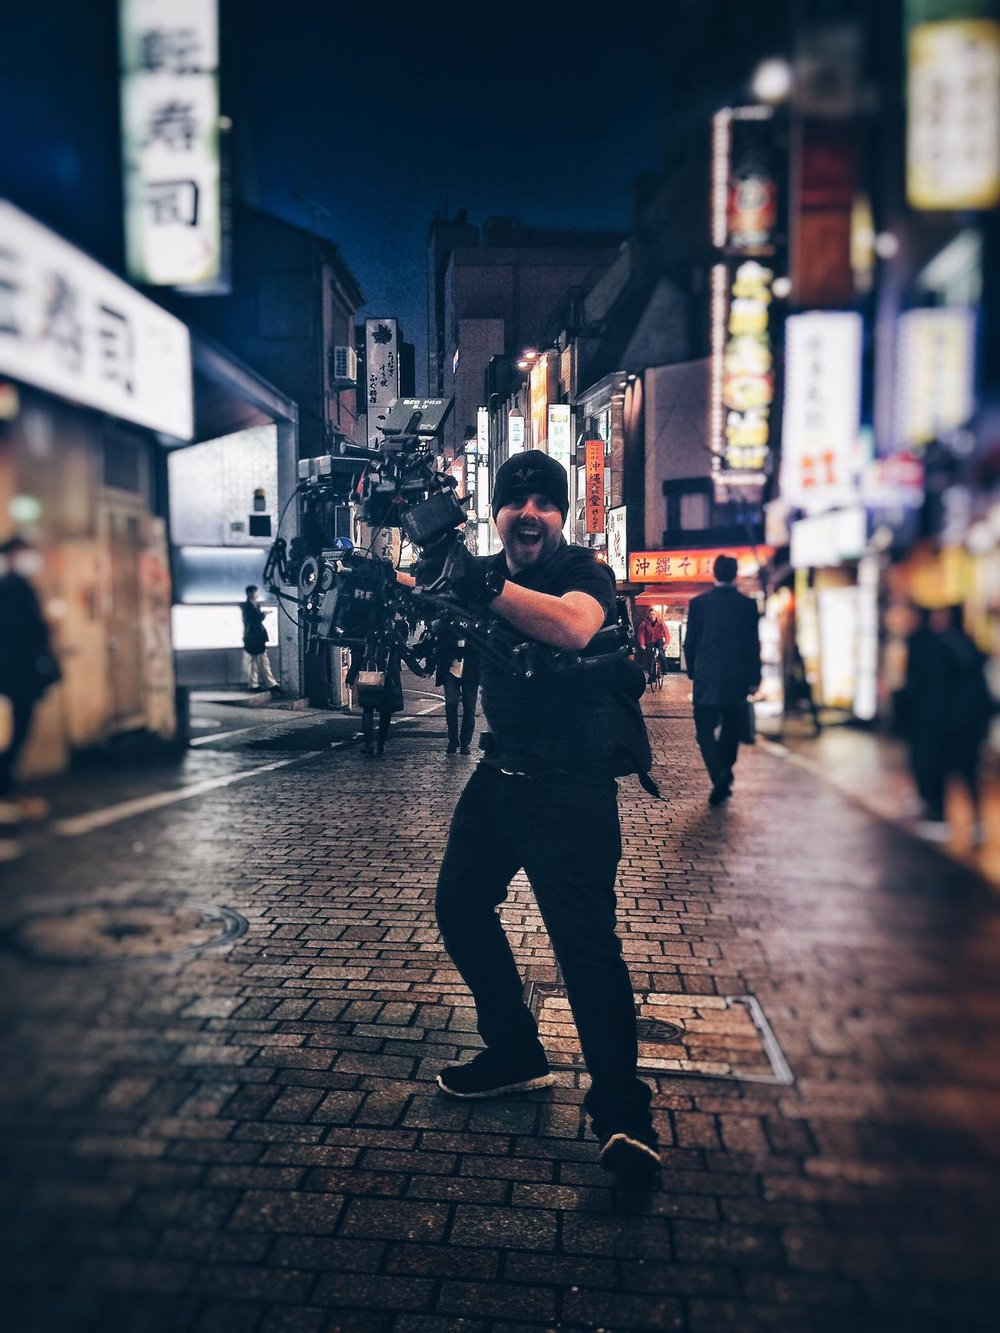 Chris McKechnie on location in Tokyo.